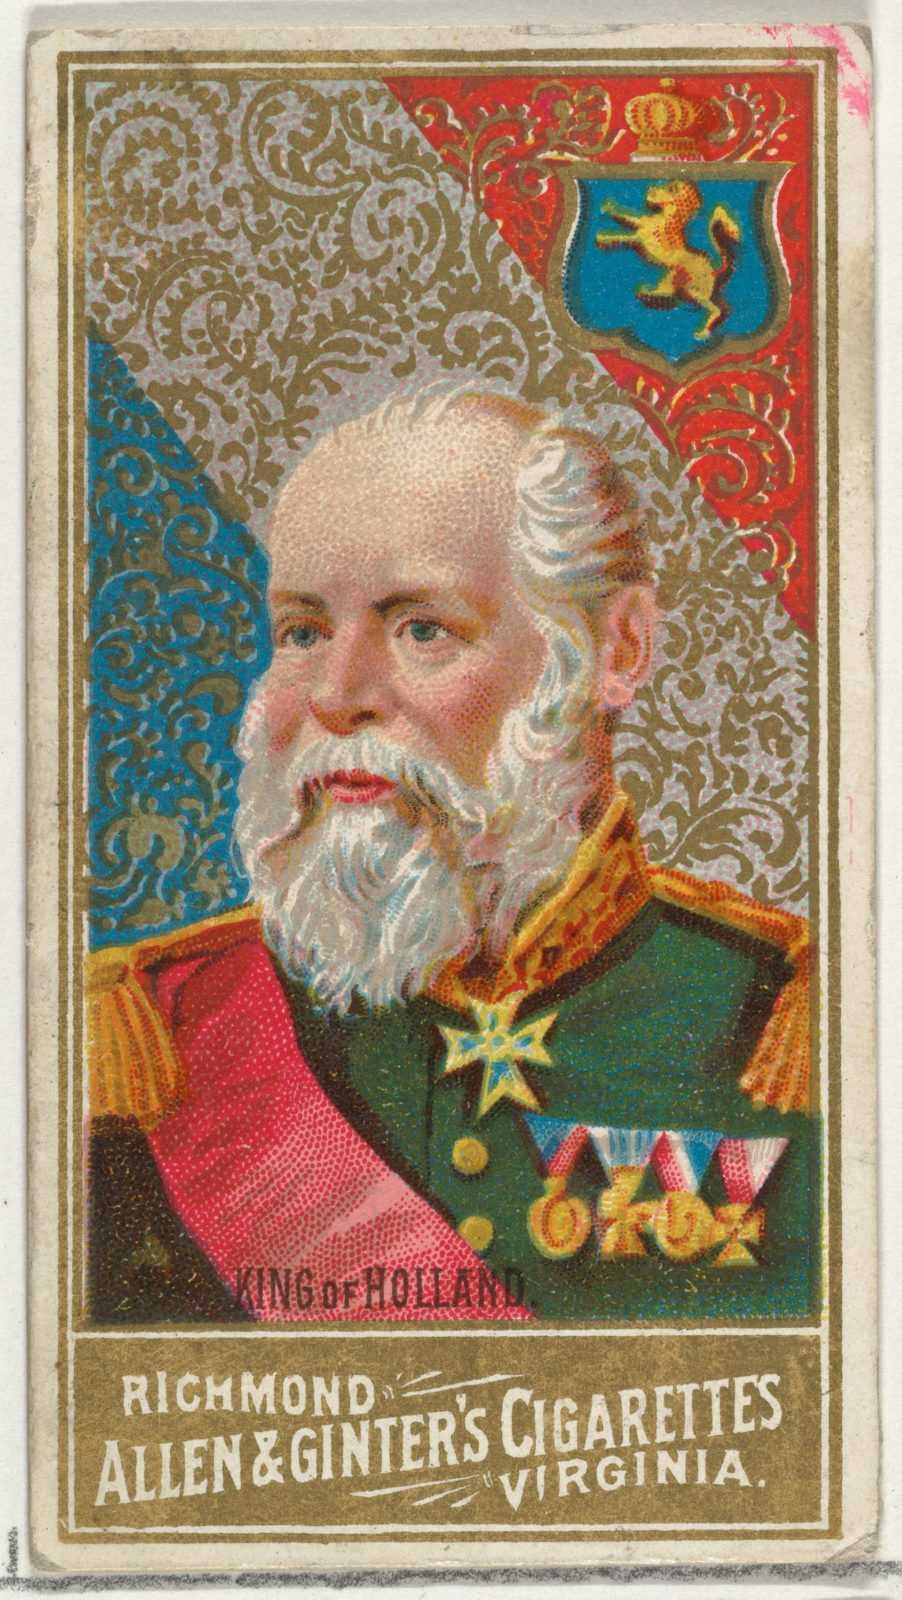 King of Holland, from World's Sovereigns series (N34) for Allen & Ginter Cigarettes